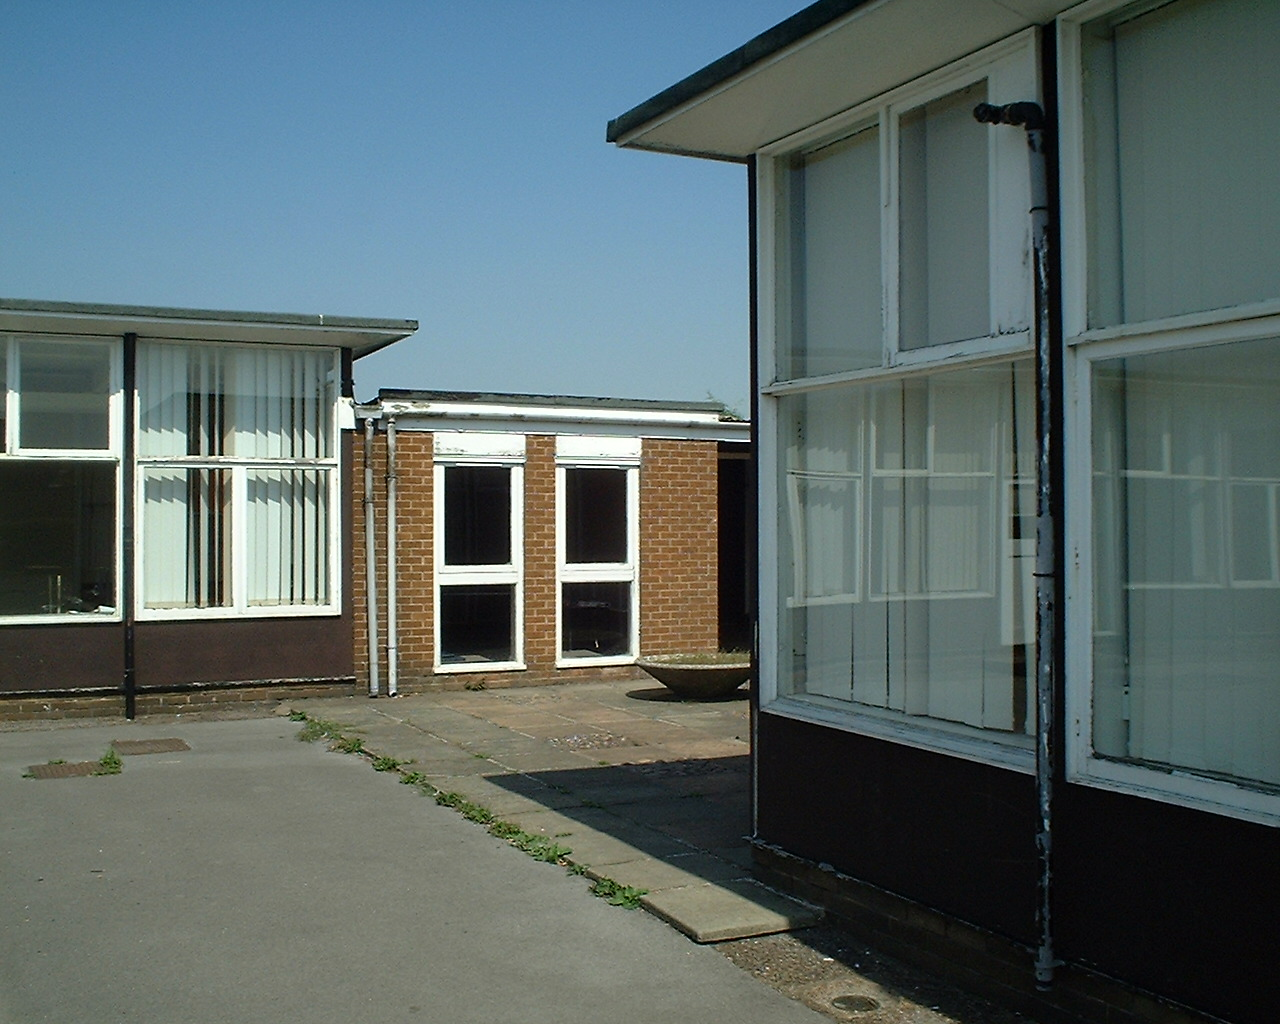 Hemsworth School Jul 2003 13